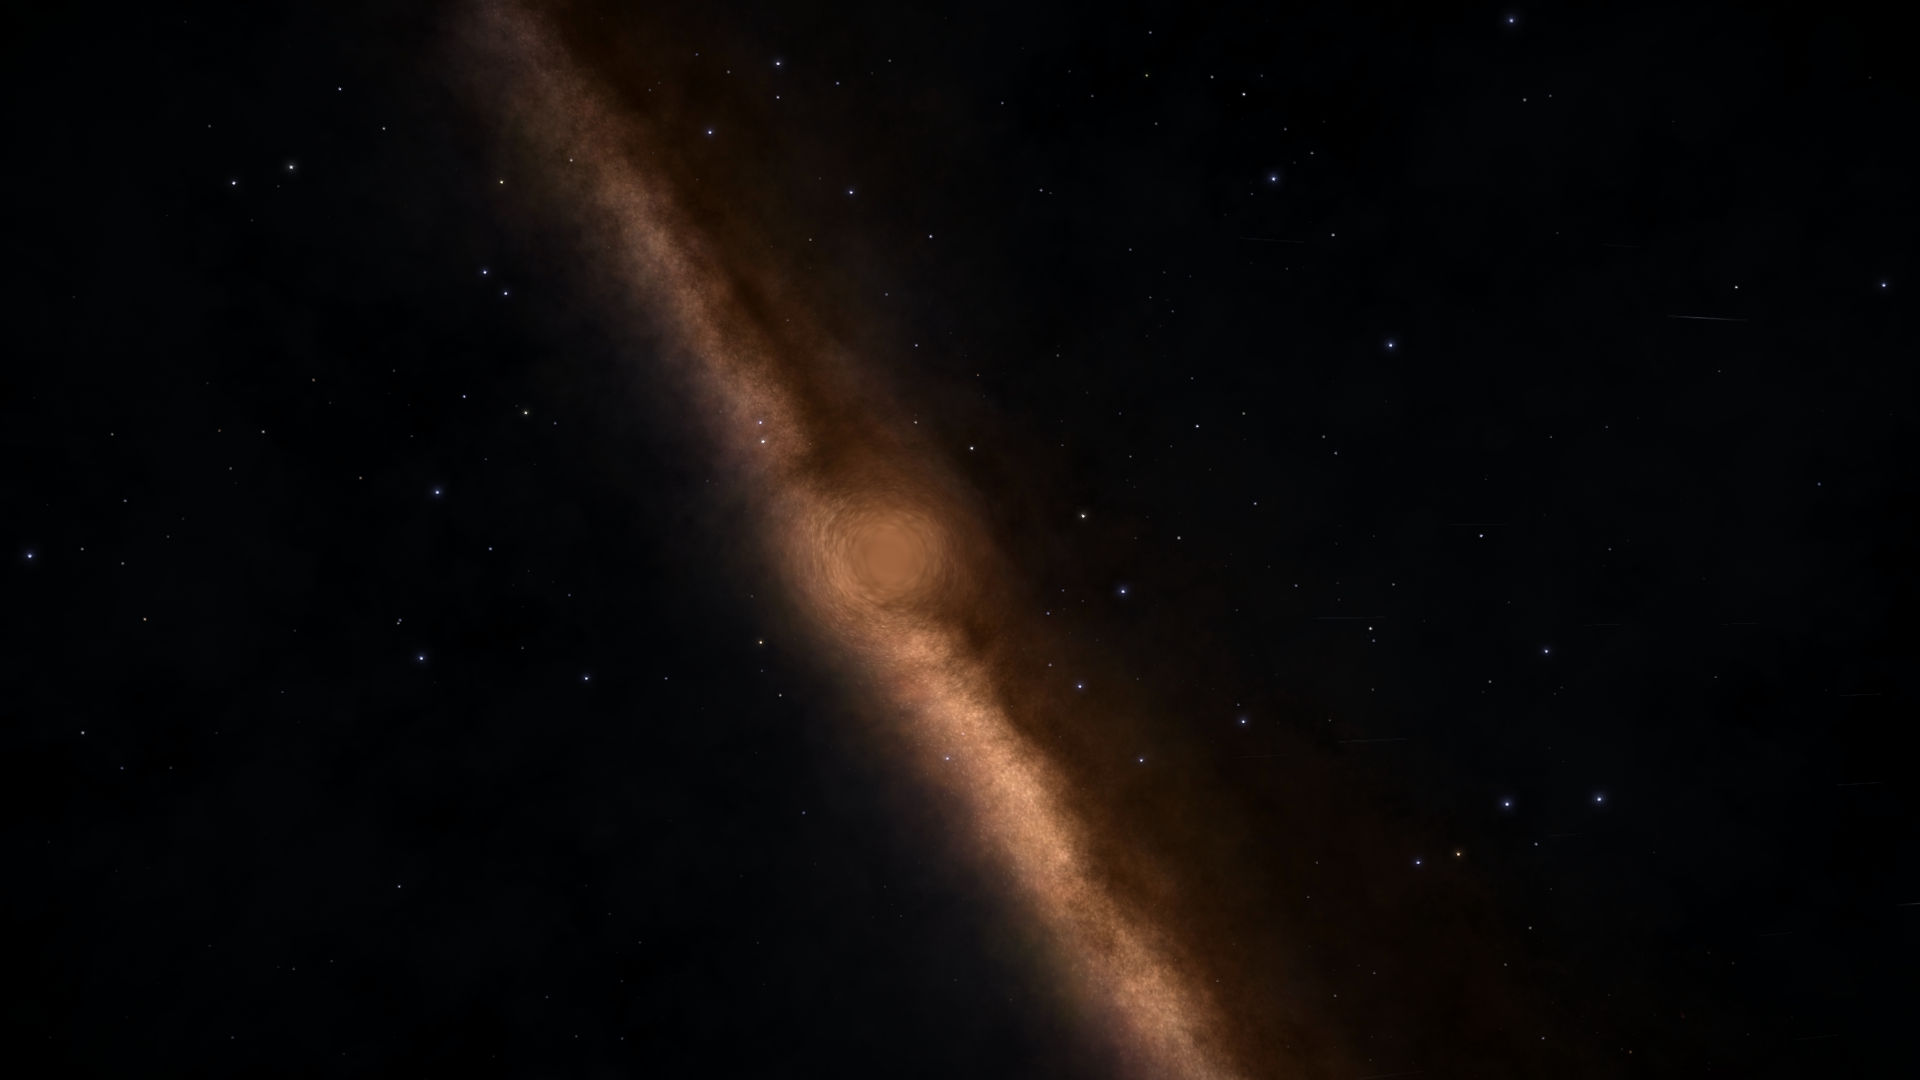 HD 167971 C - Black Hole